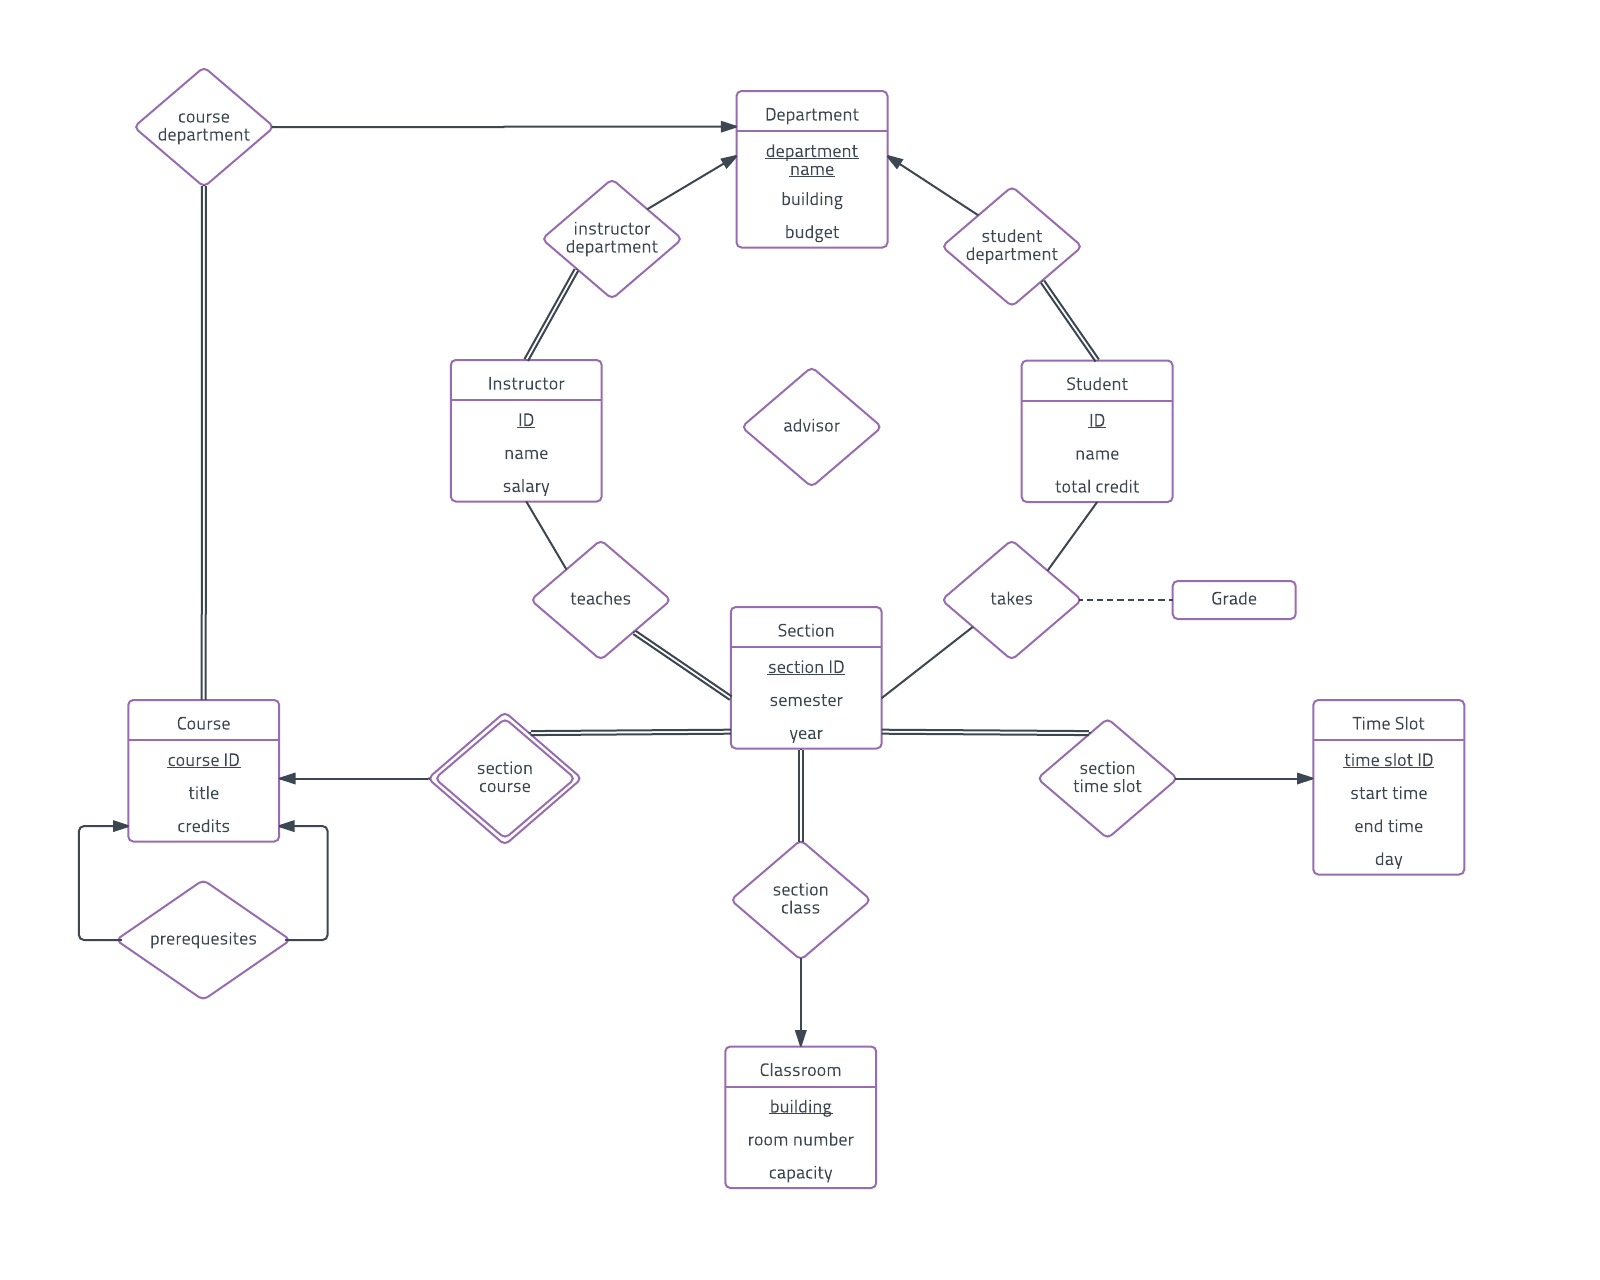 Er Diagram Examples And Templates | Lucidchart with regard to Entity Relationship Examples